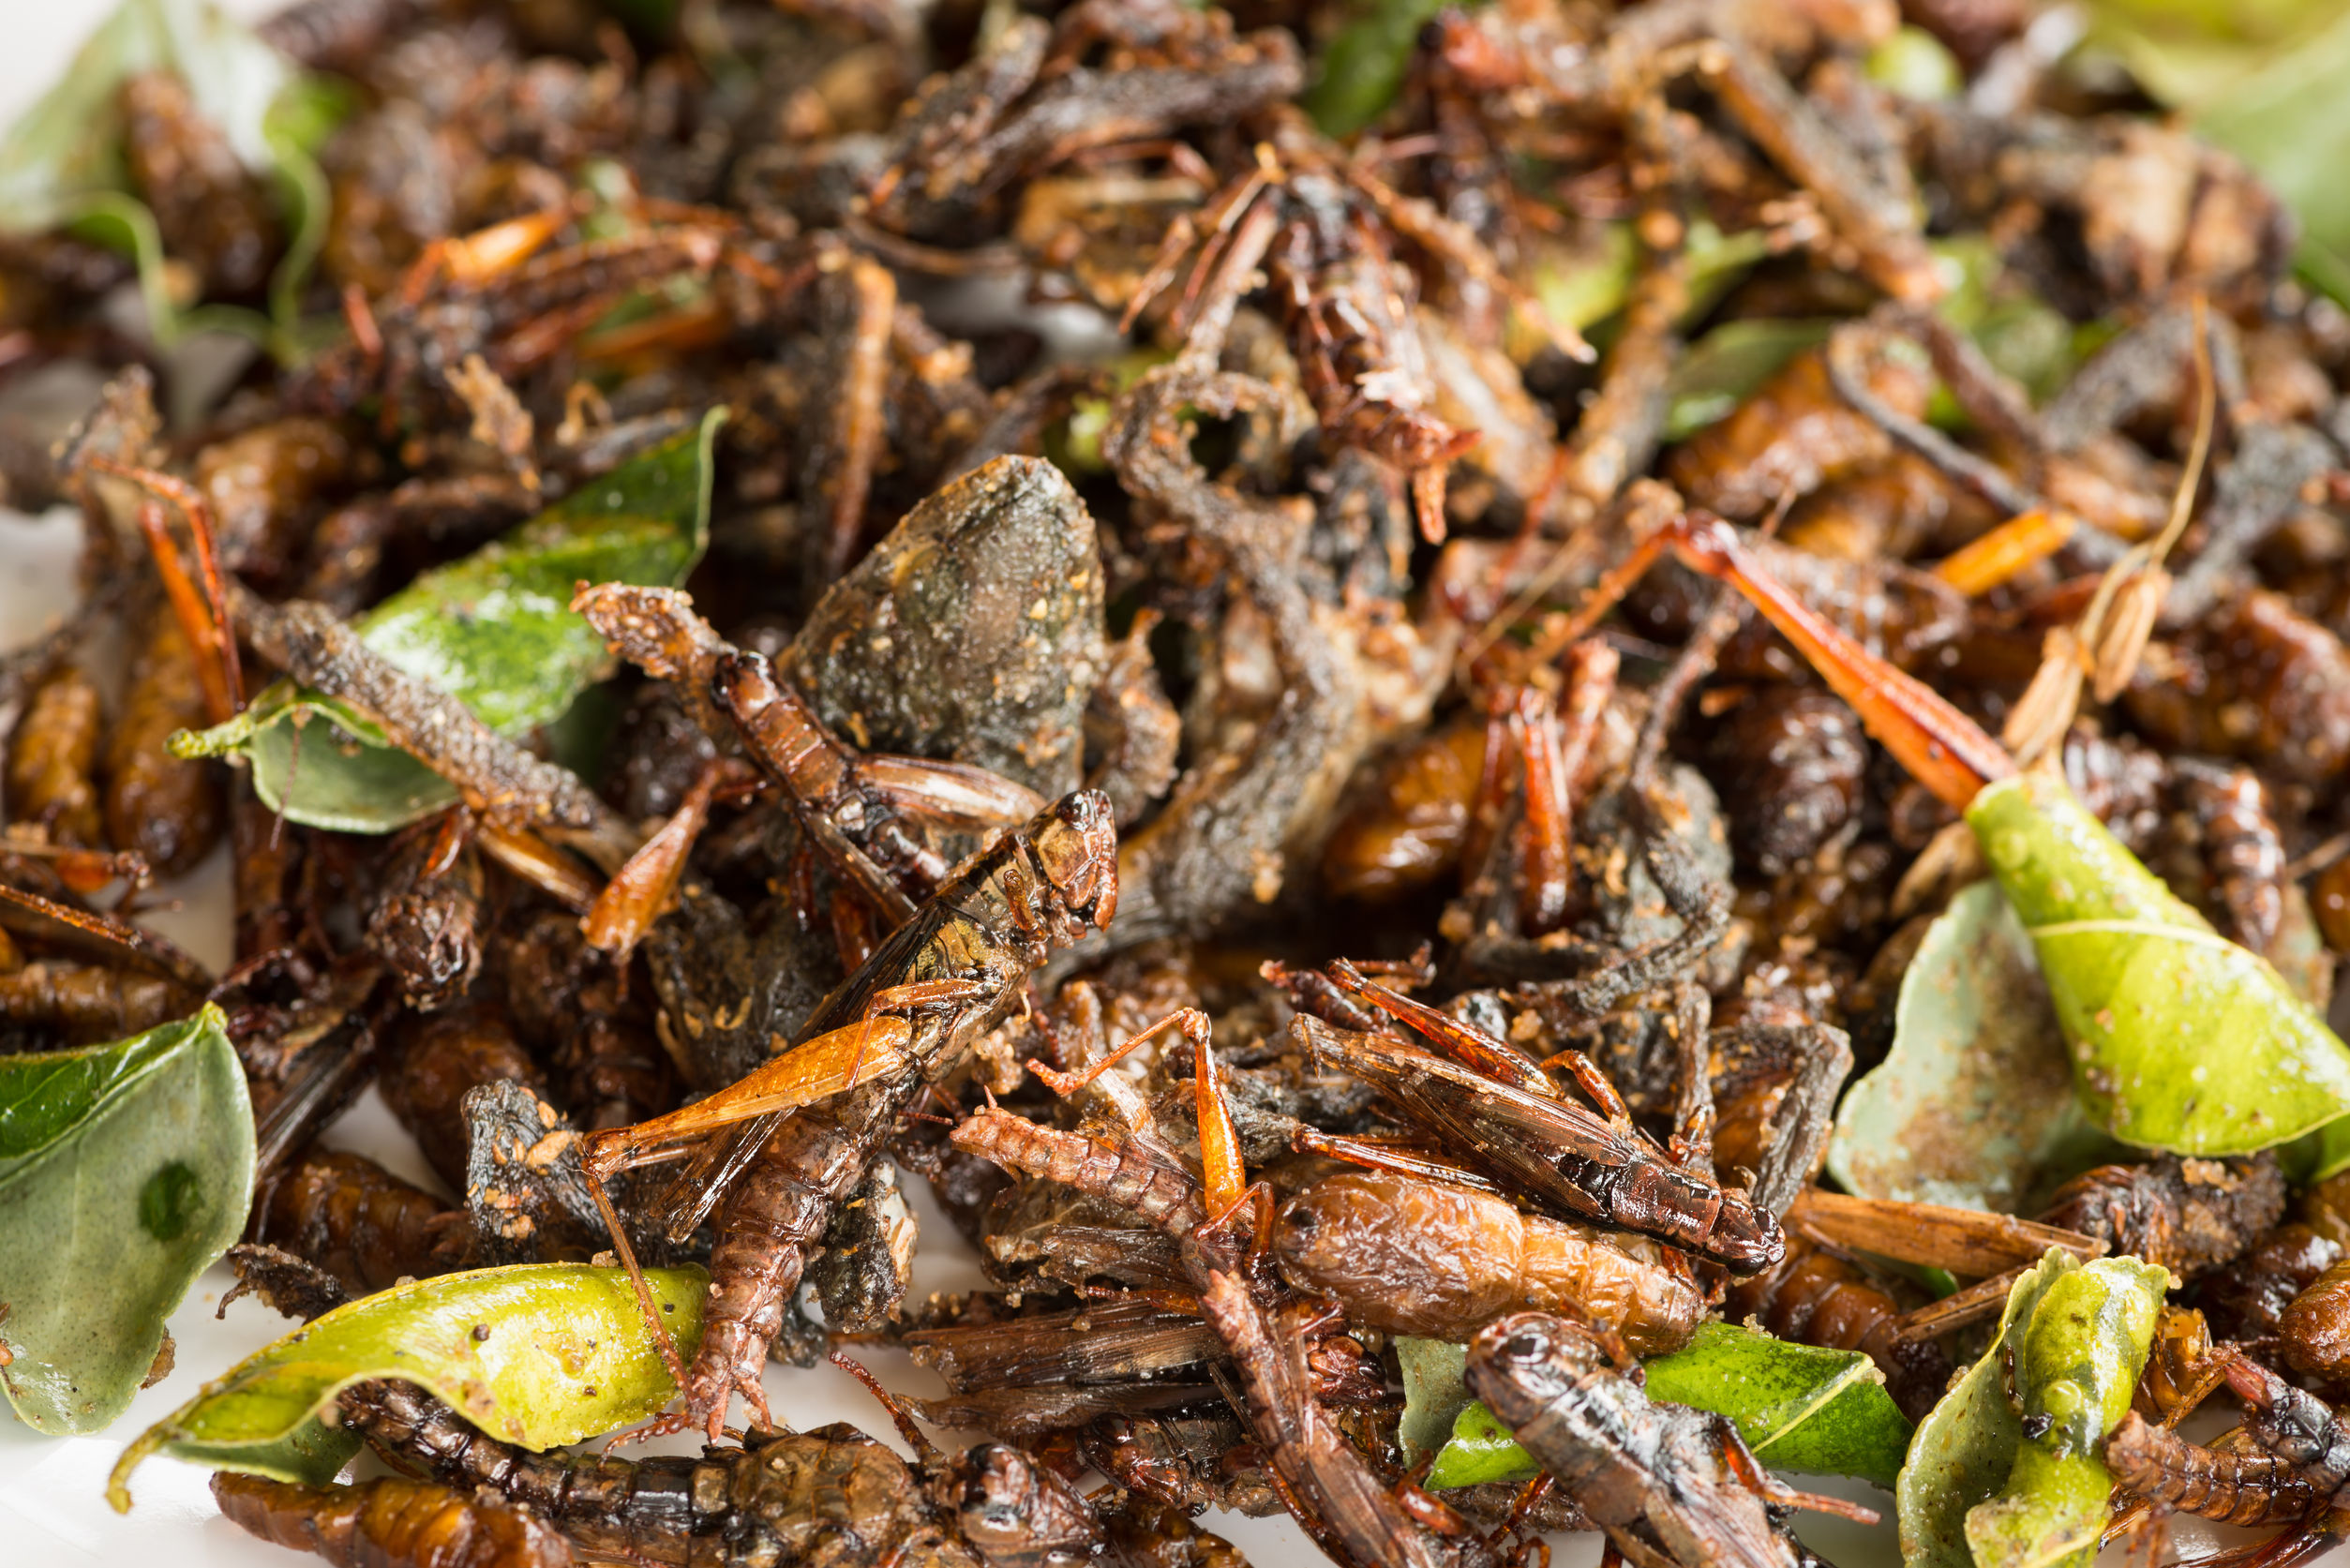 edible-insects-australia-new-zealand